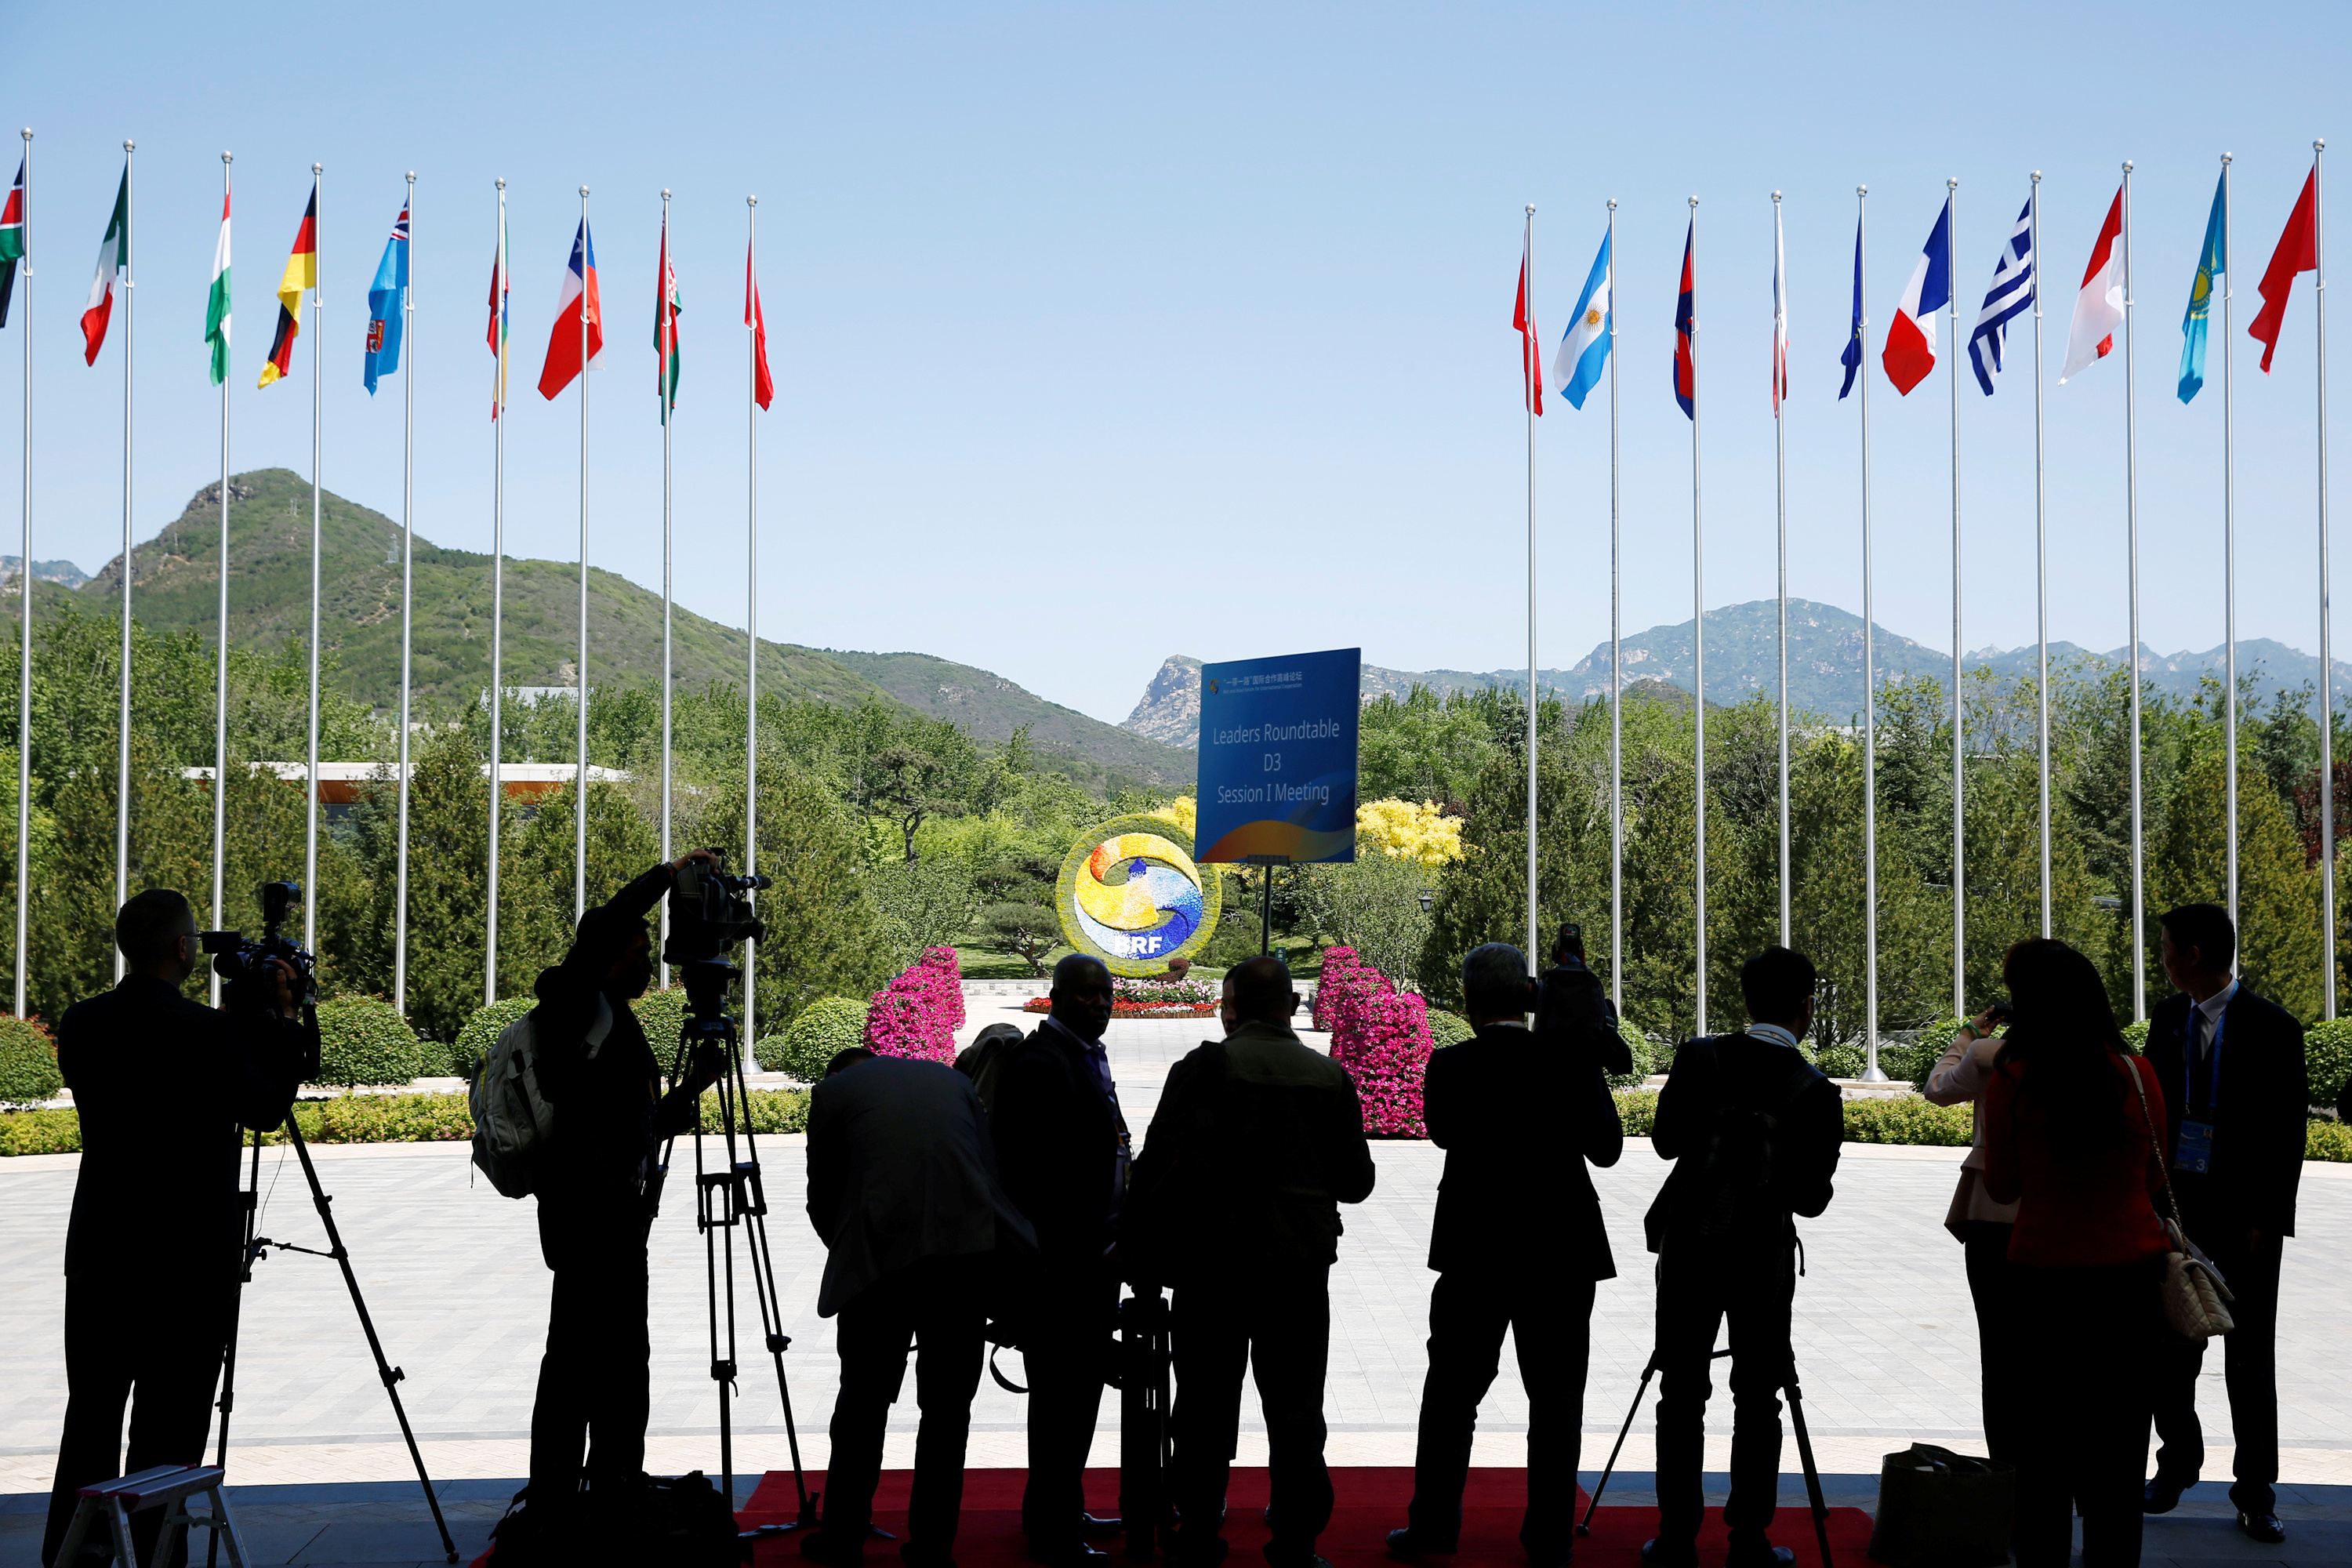 FILE - Journalist take pictures outside the venue of a summit at the Belt and Road Forum in Beijing, China, May 15, 2017.